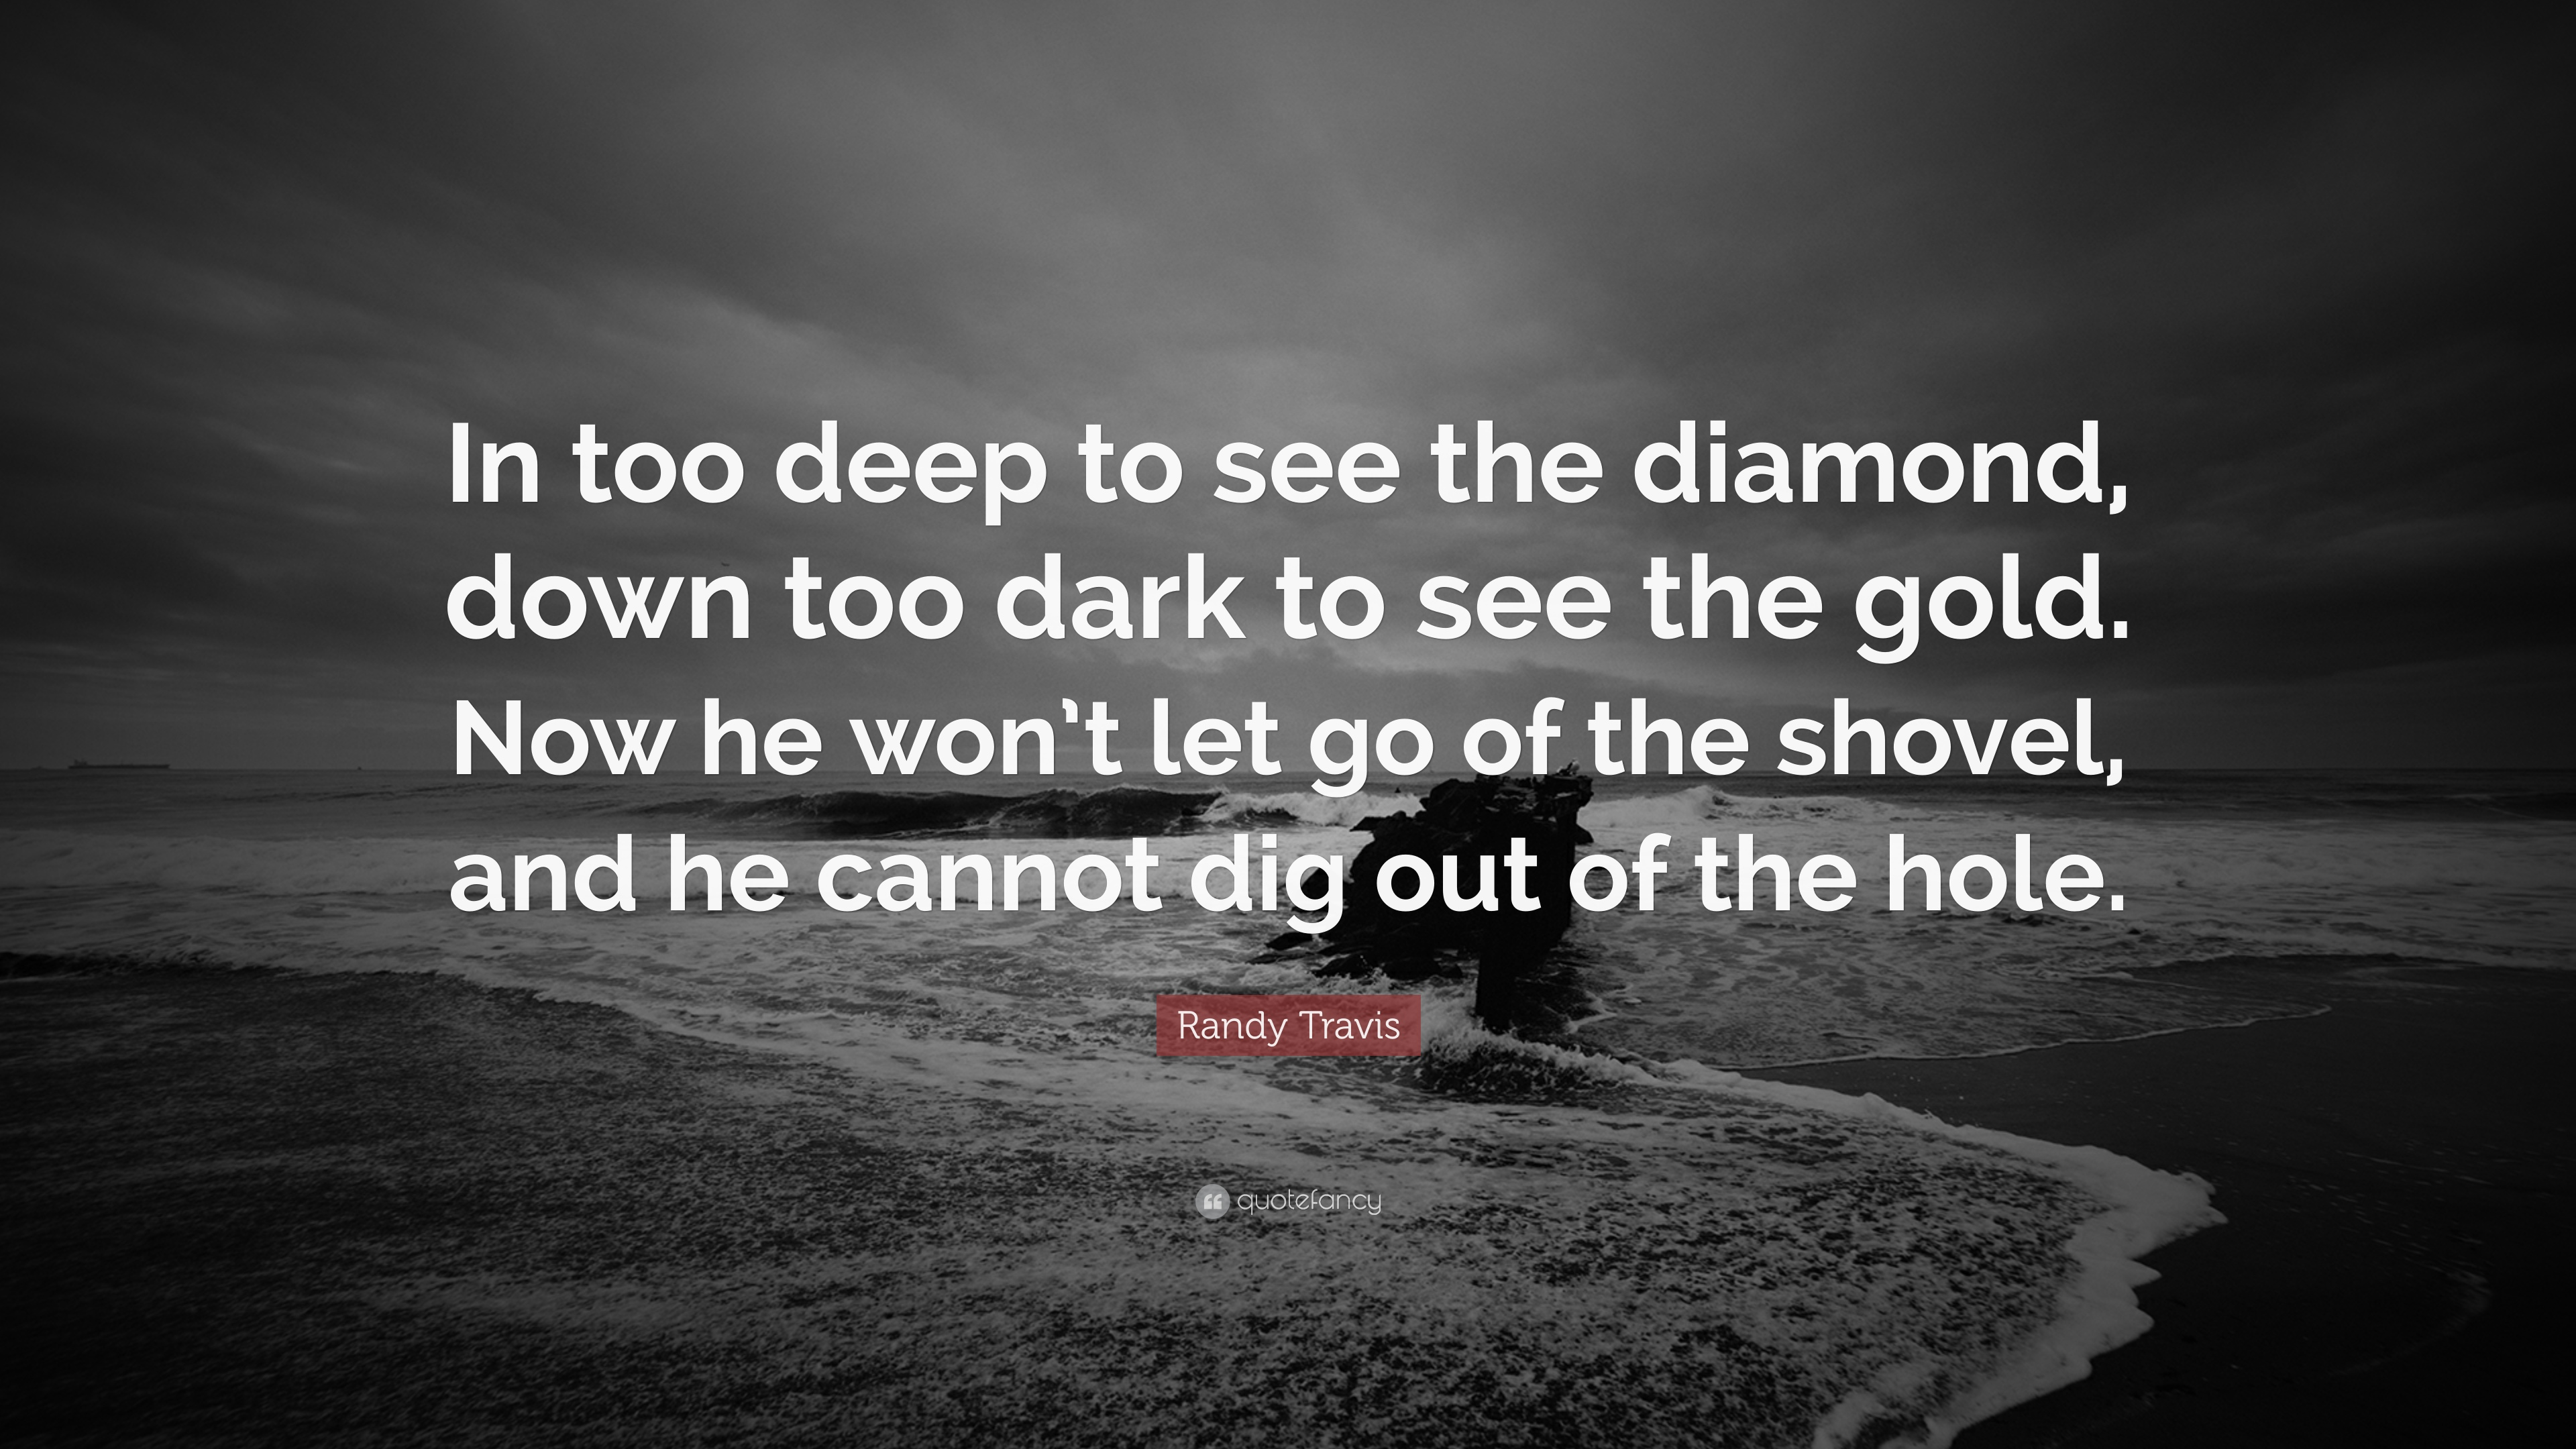 Randy Travis Quote In Too Deep To See The Diamond Down Too Dark